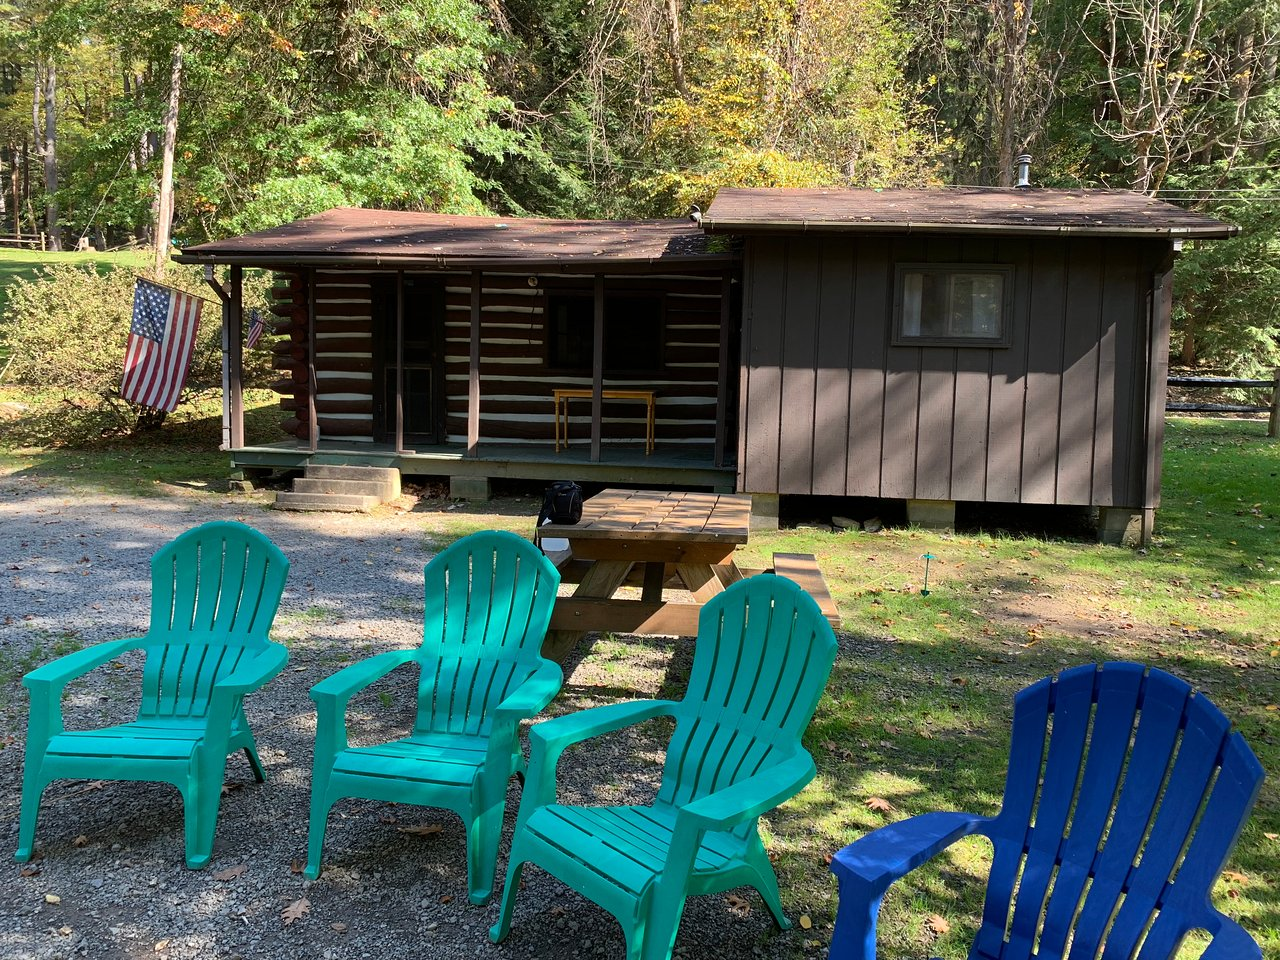 MACBETH'S CABINS - Updated 2019 Campground Reviews